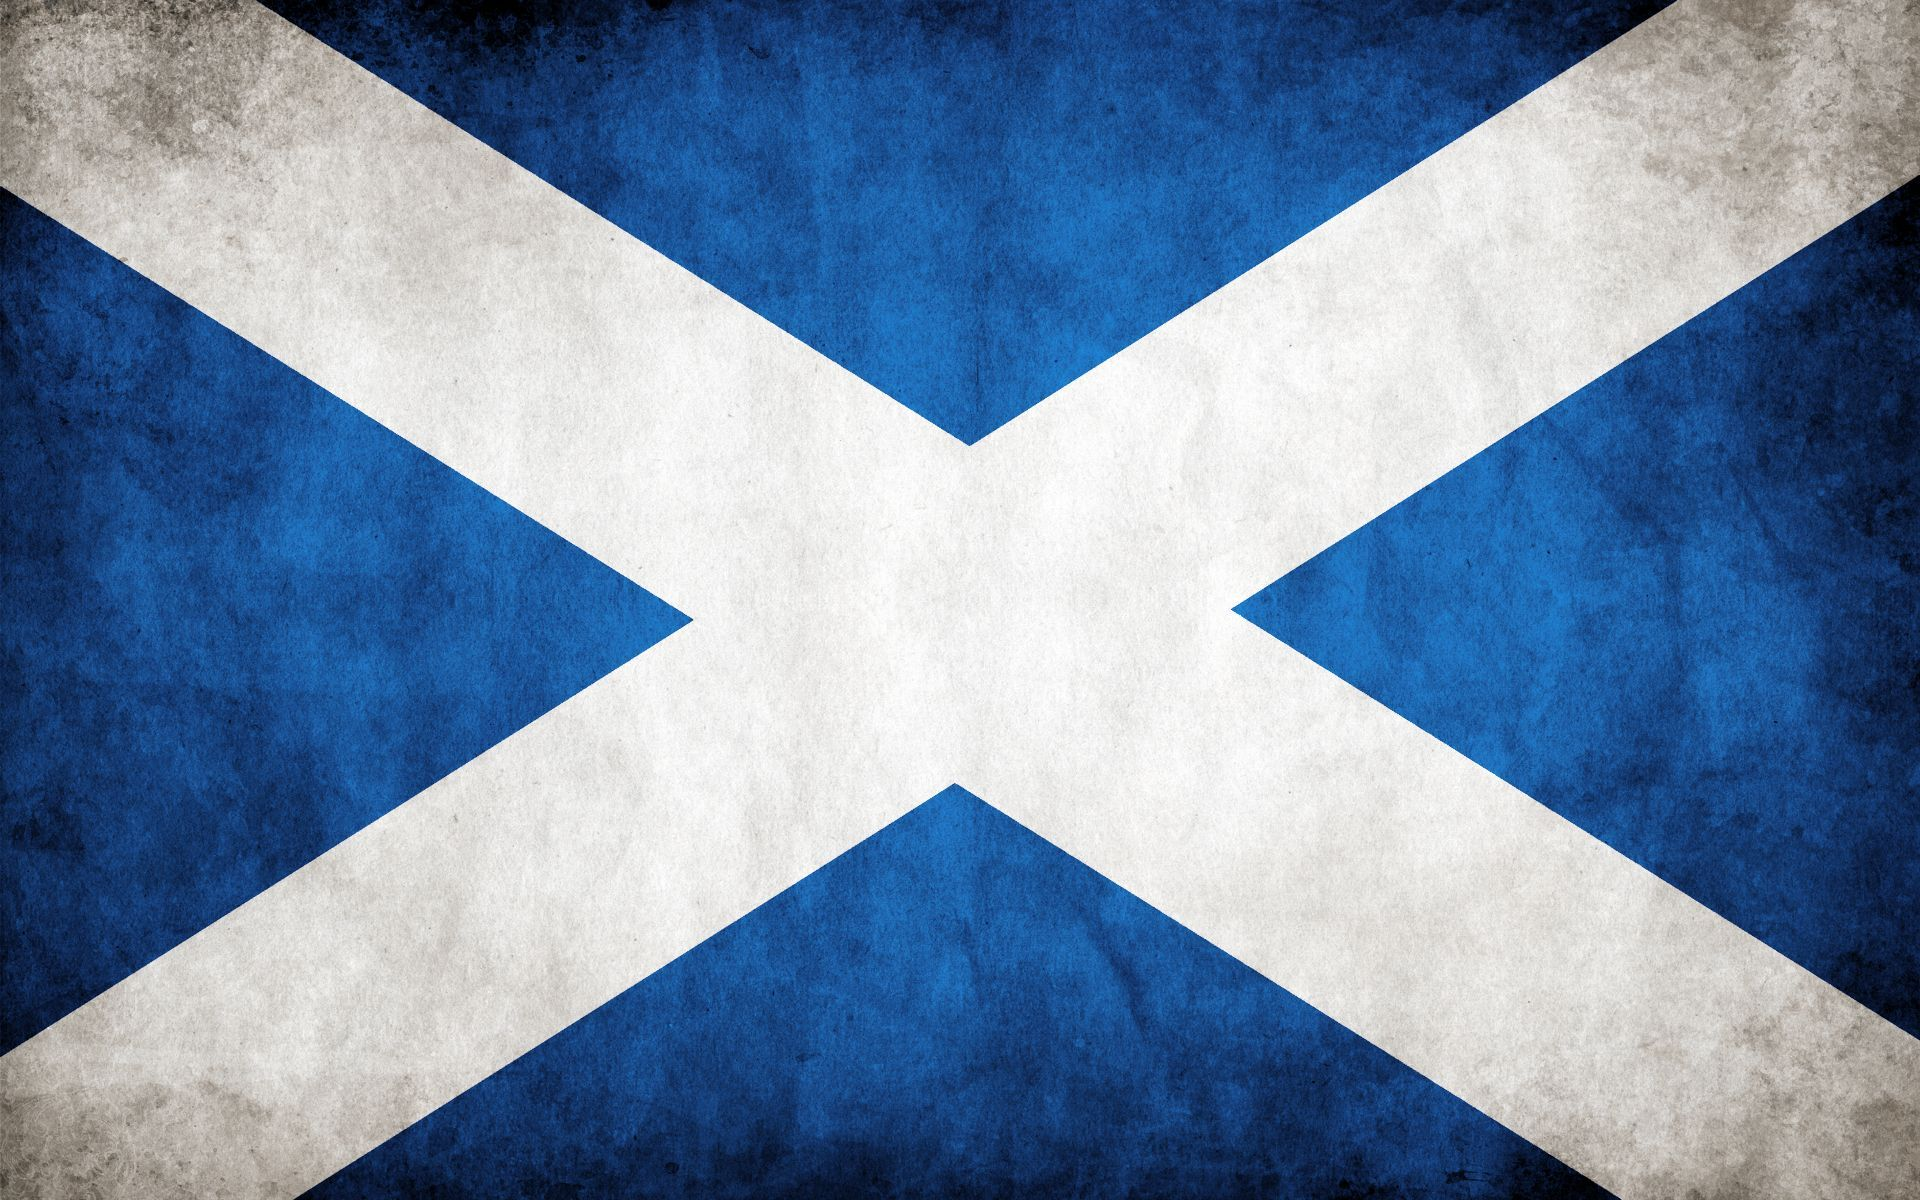 Scottish Flag Wallpaper - WallpaperSafari